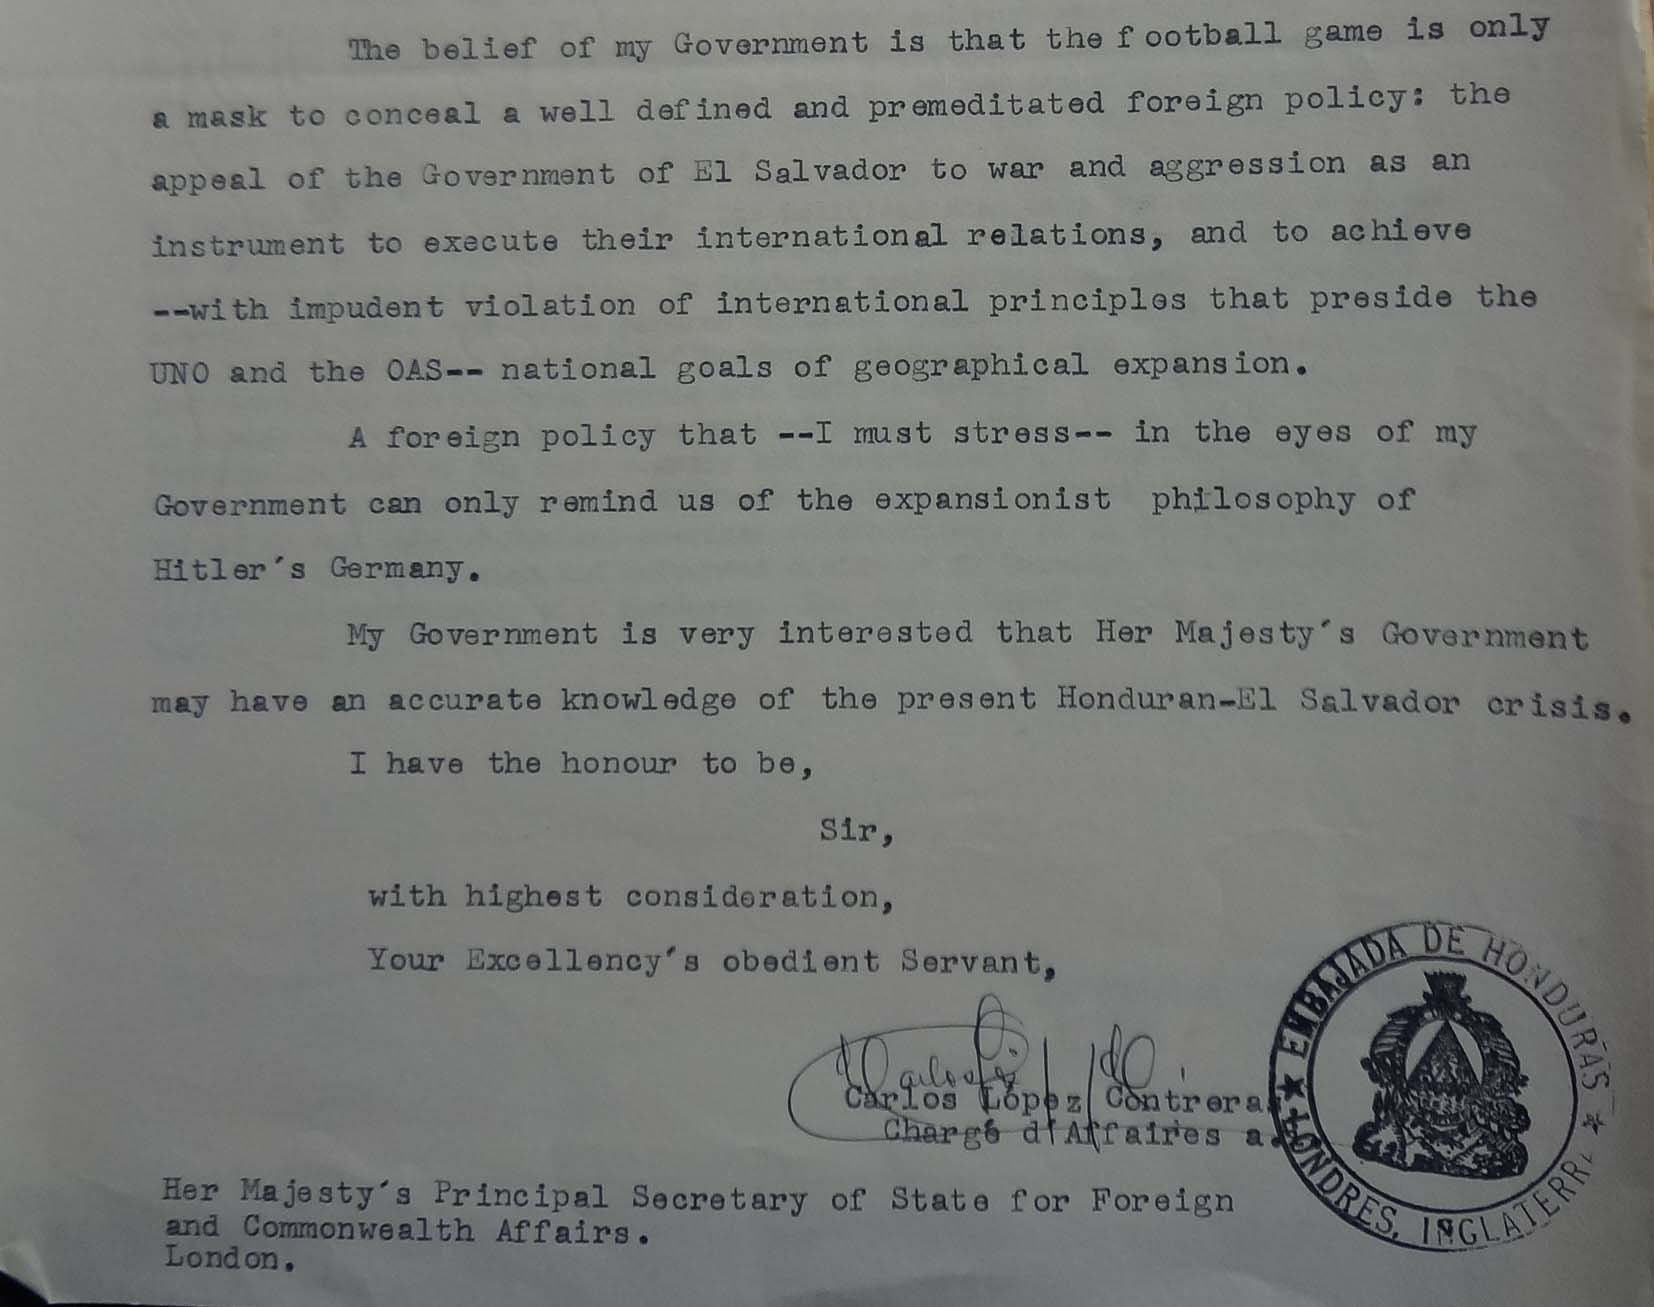 Letter from the Honduran Chargé d'Affaires to the FCO, 4 July 1969 (catalogue reference: FCO 7/1210)